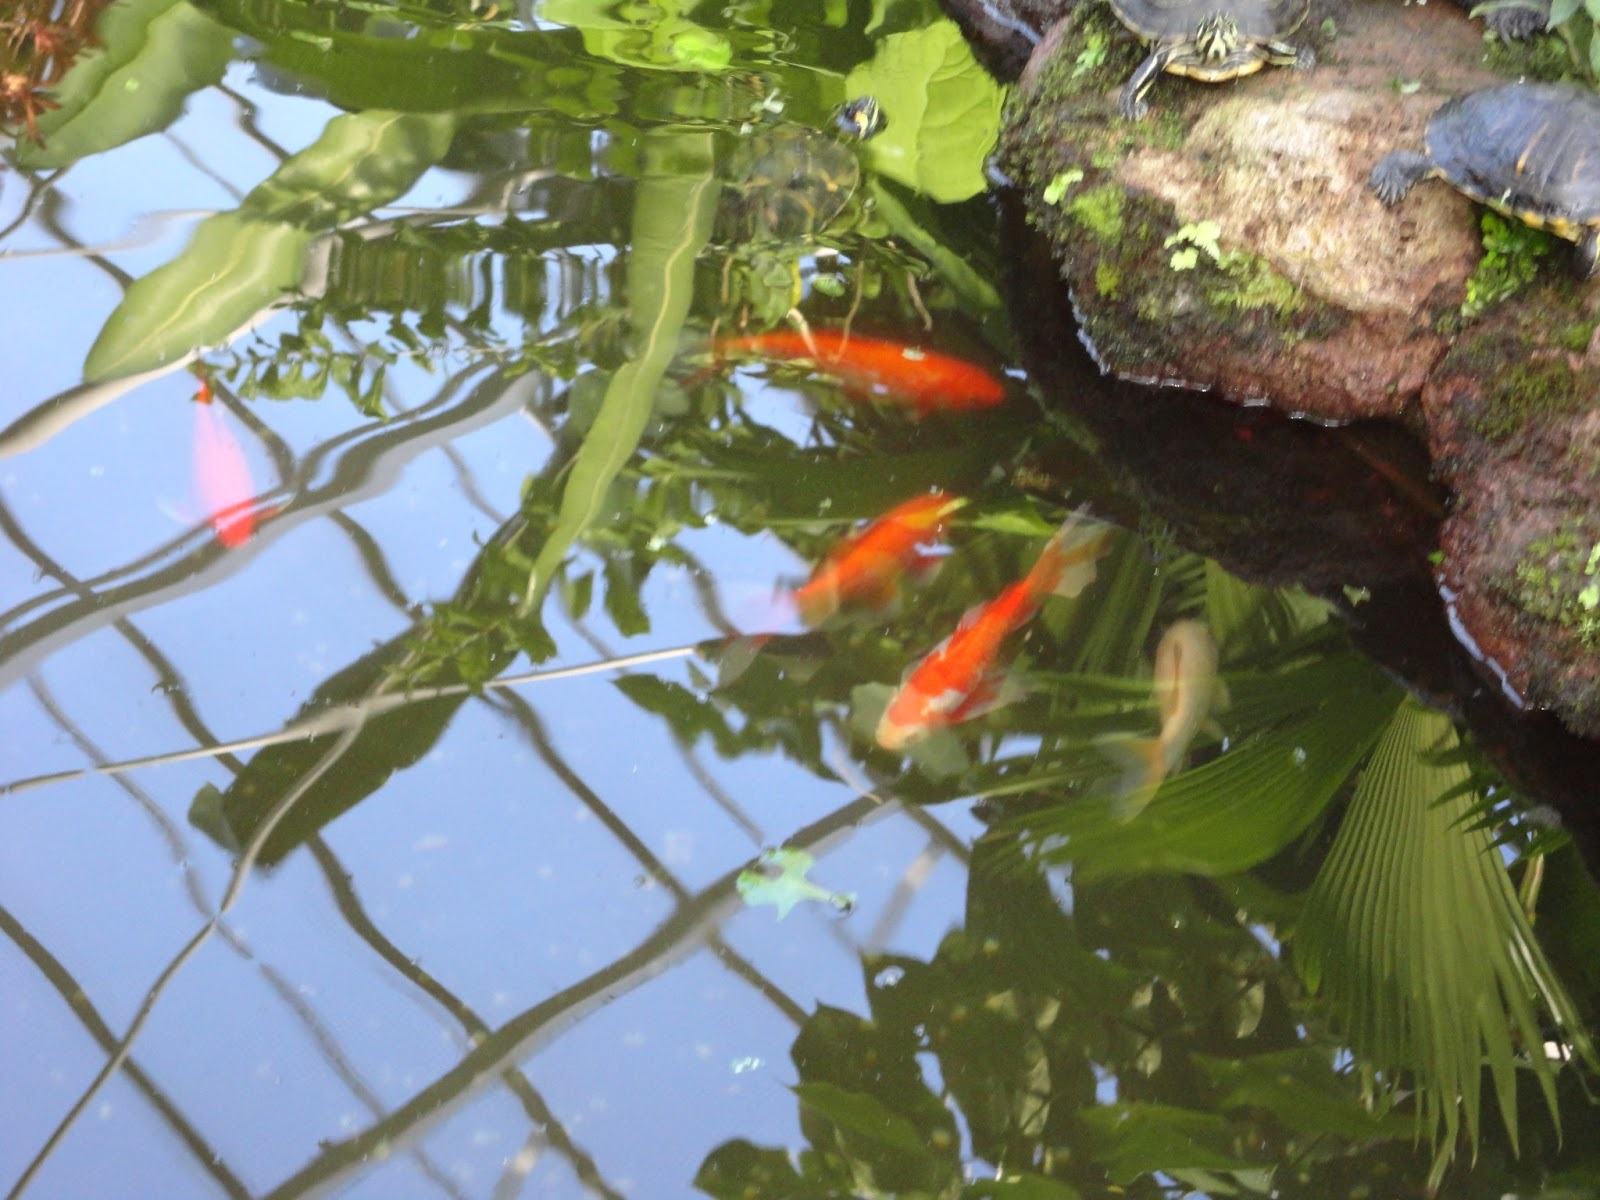 Paradise florists blog koi fish pond for What is a koi pond